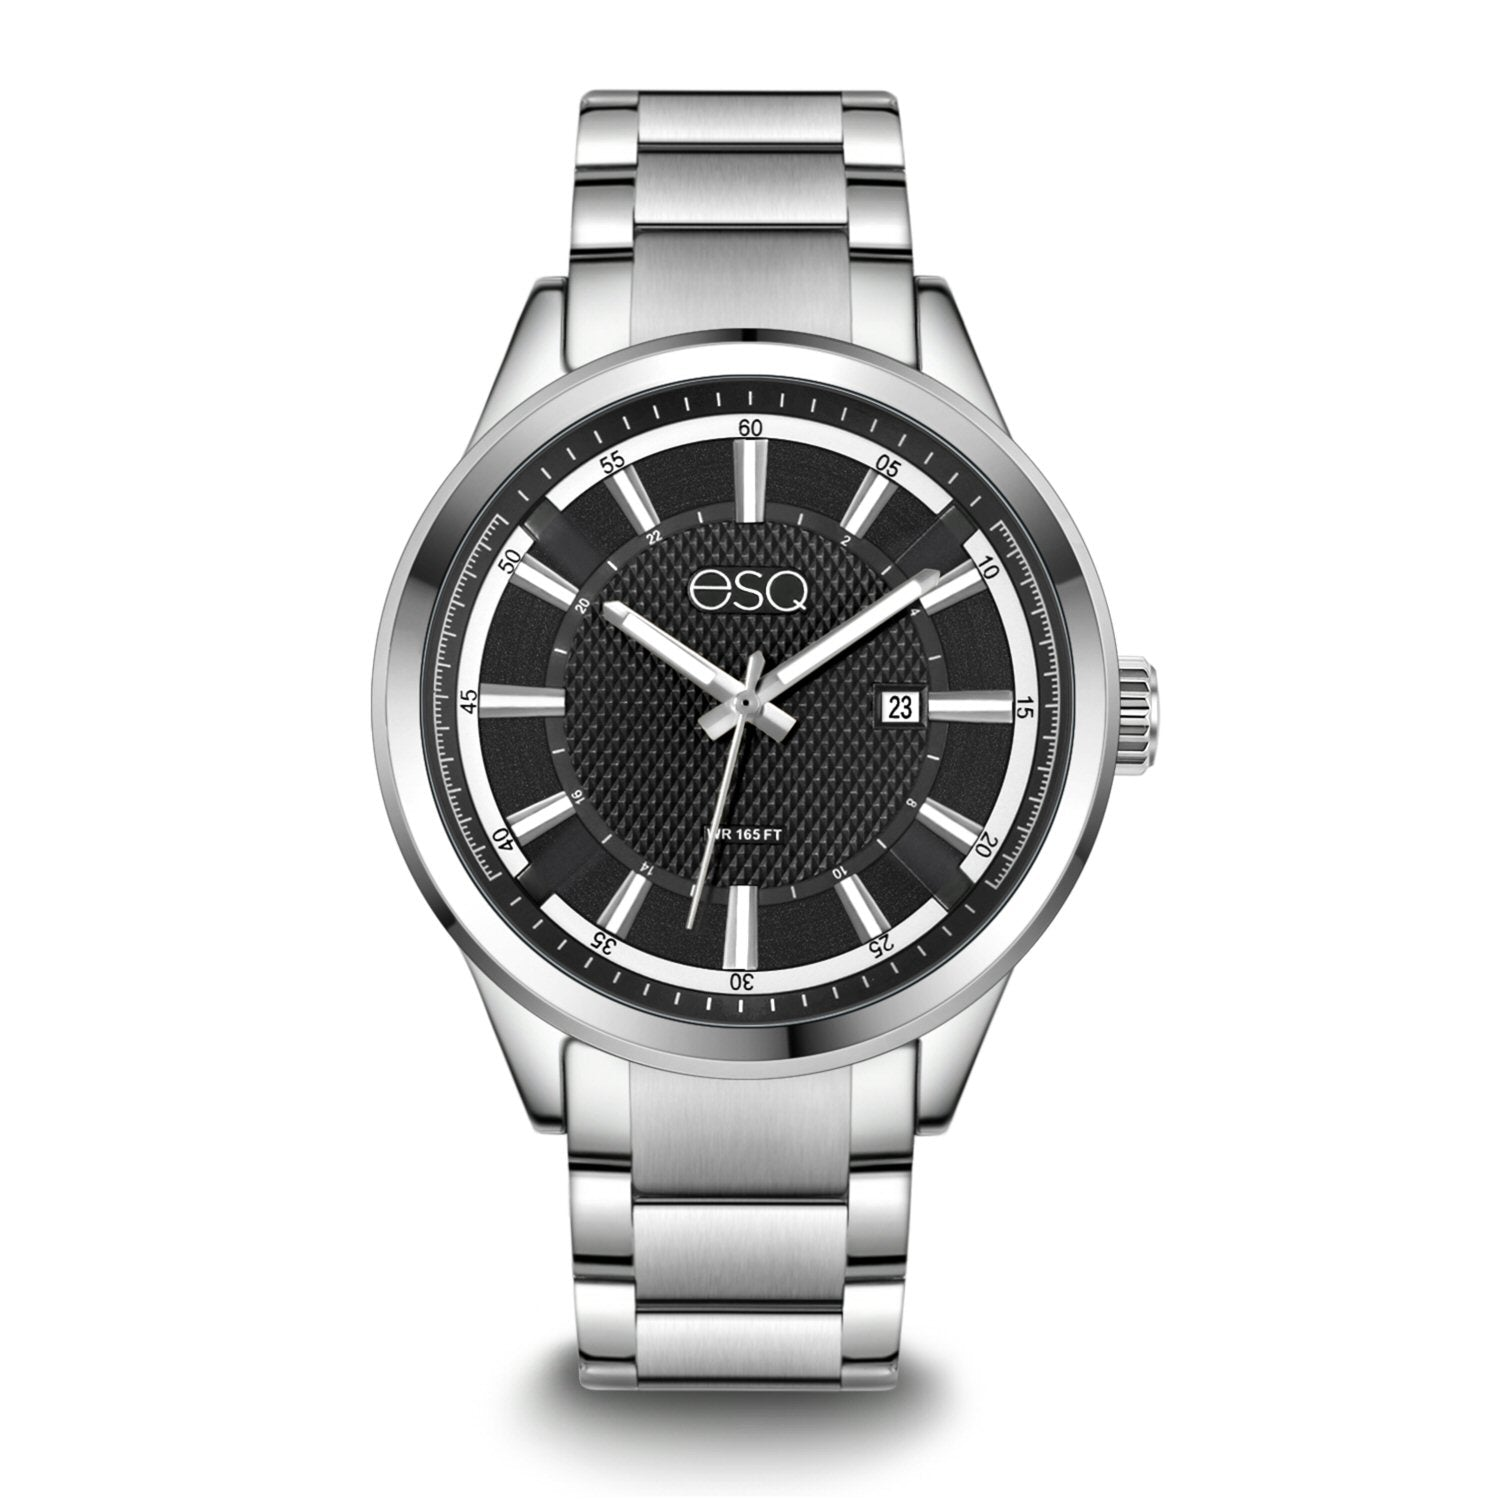 Men's ESQ0170 Stainless Steel Bracelet Watch with Textured Black Dial and Date Window